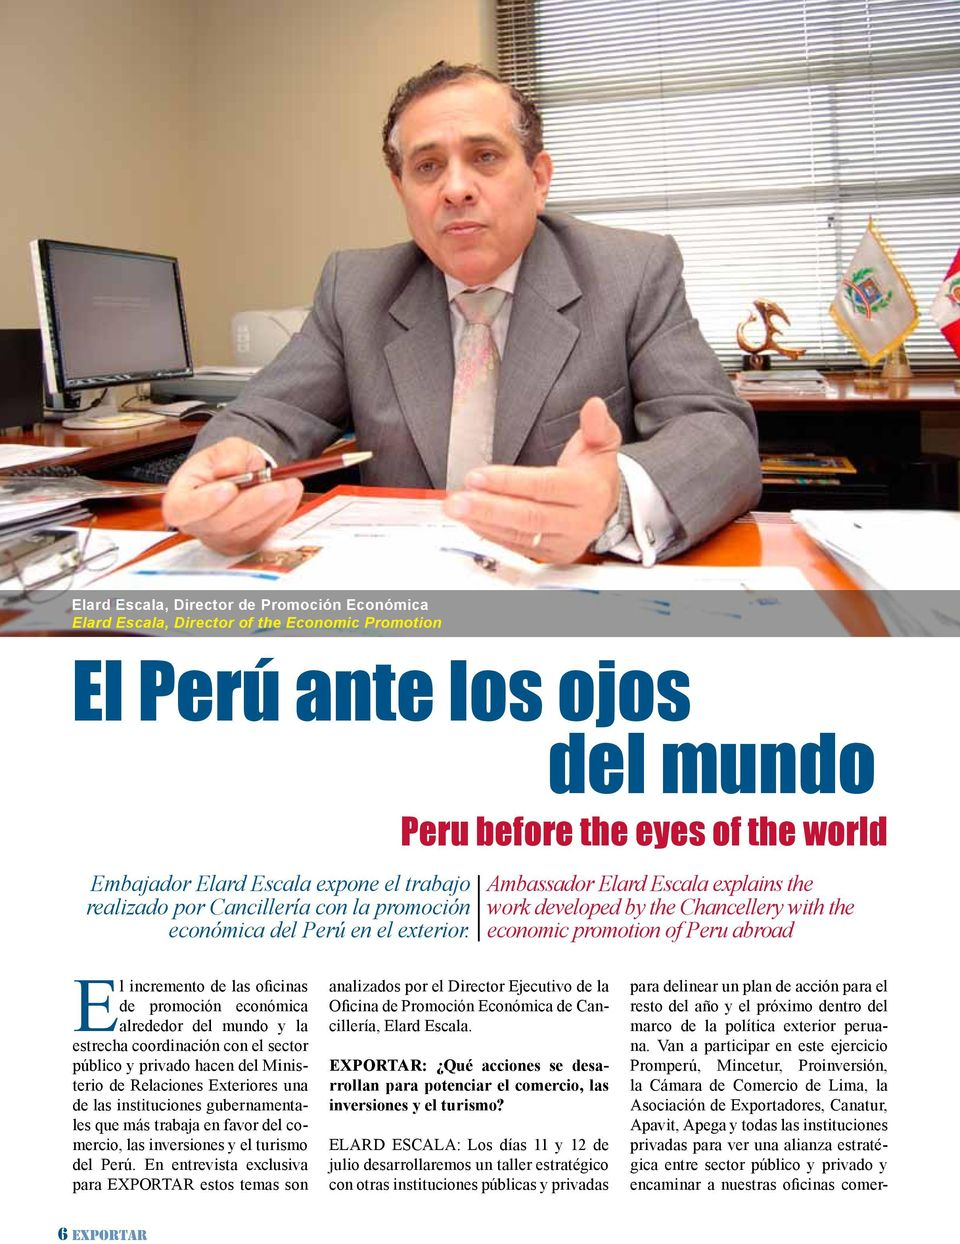 Peru before the eyes of the world Ambassador Elard Escala explains the work developed by the Chancellery with the economic promotion of Peru abroad El incremento de las oficinas de promoción